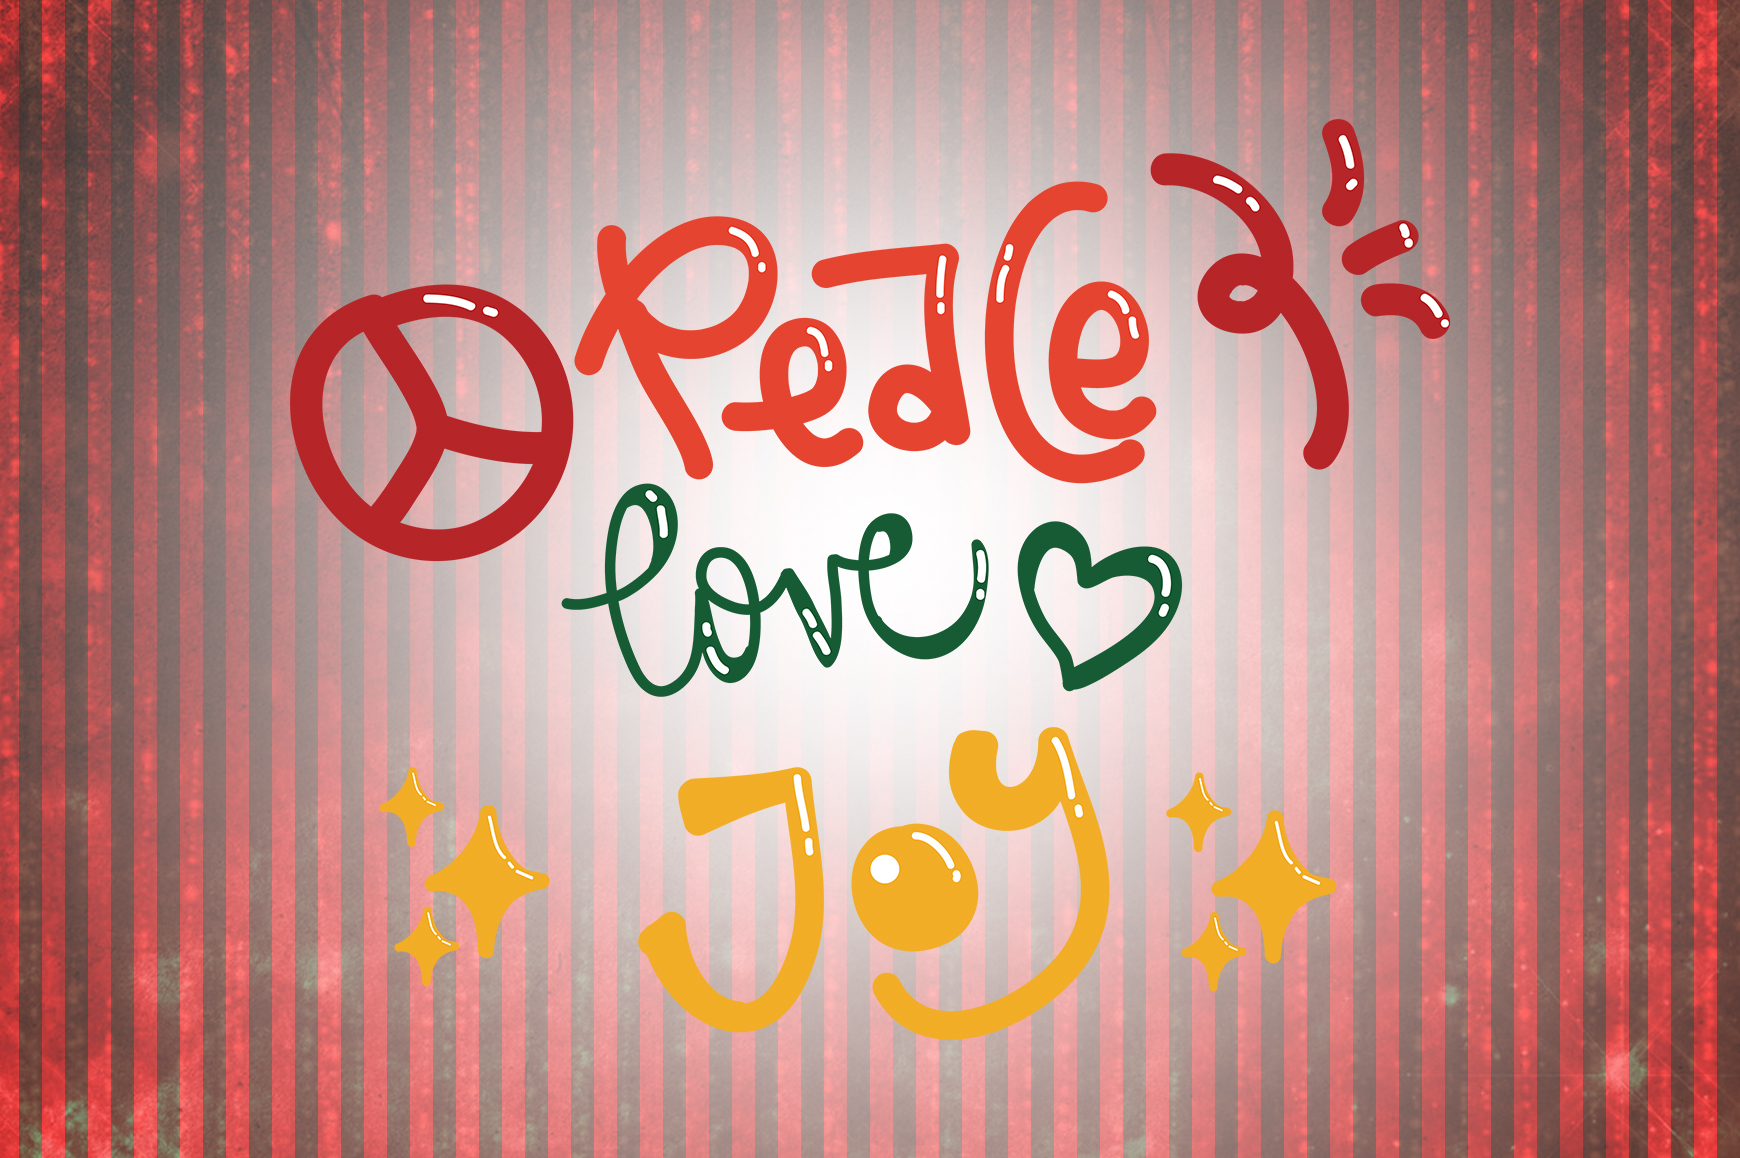 Download Free Peace Love Joy Christmas Quotes Graphic By Wienscollection Creative Fabrica for Cricut Explore, Silhouette and other cutting machines.